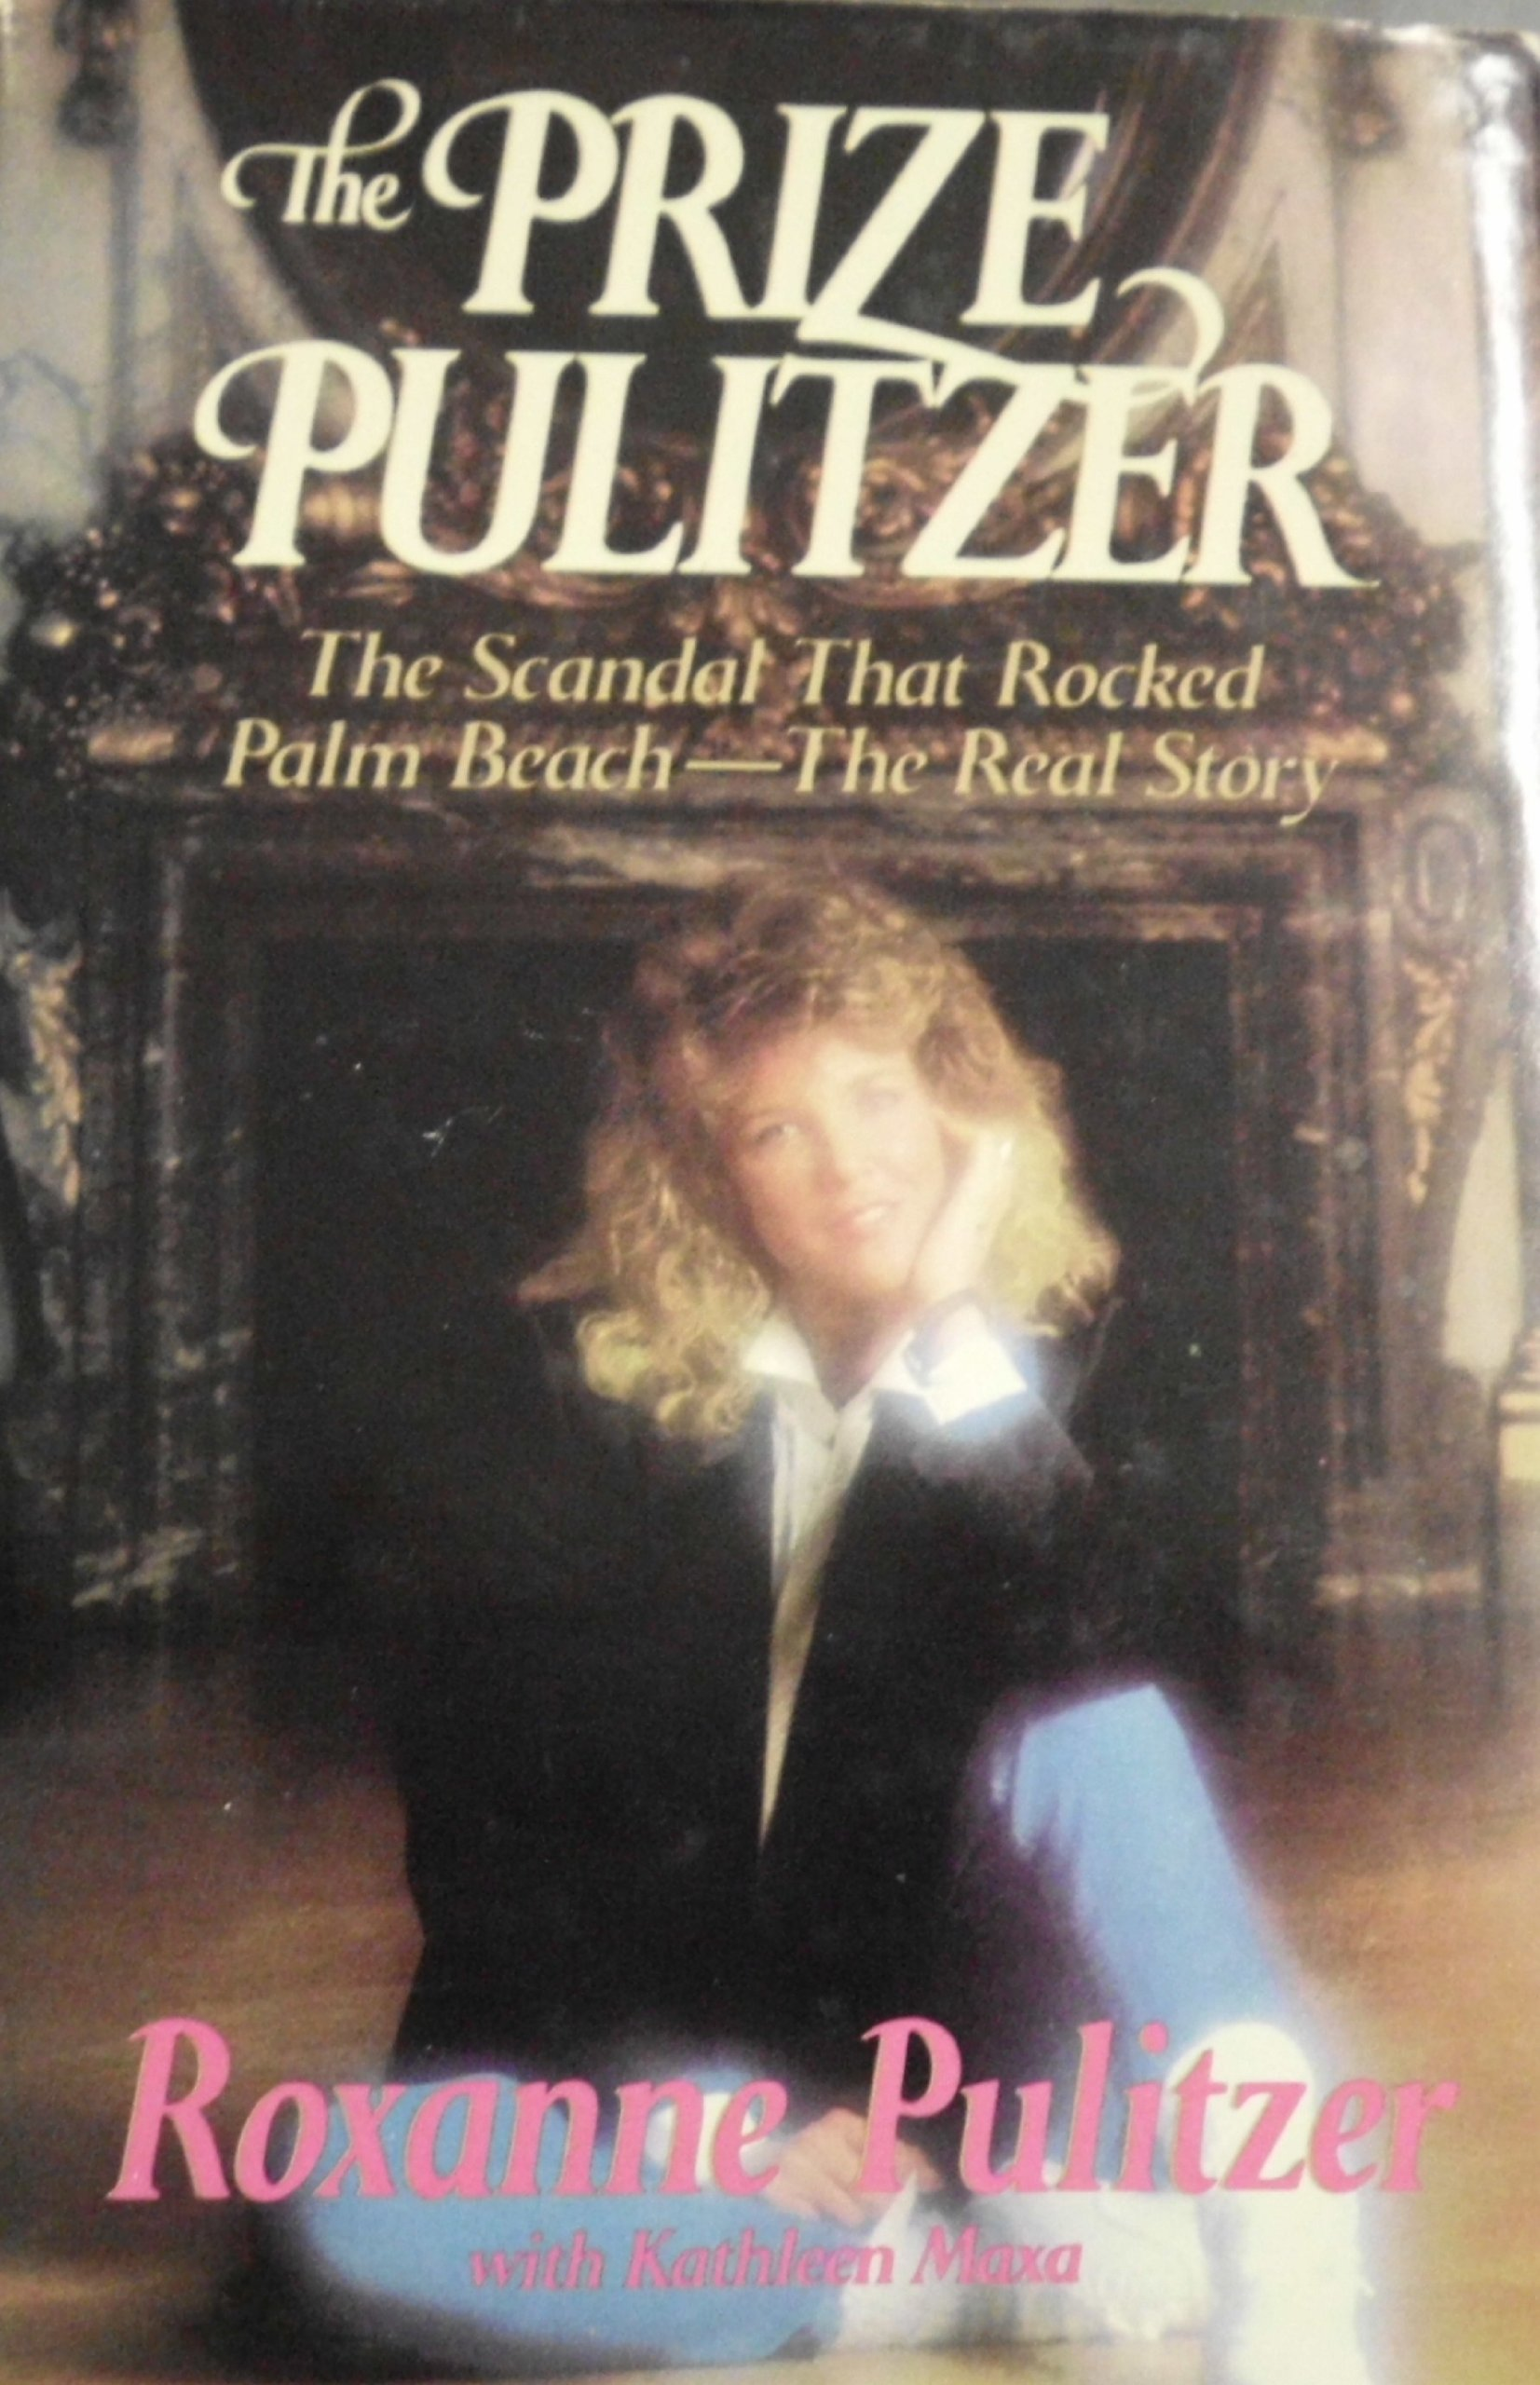 dc2c92716a The Prize Pulitzer  Roxanne Pulitzer  9780394557618  Amazon.com  Books